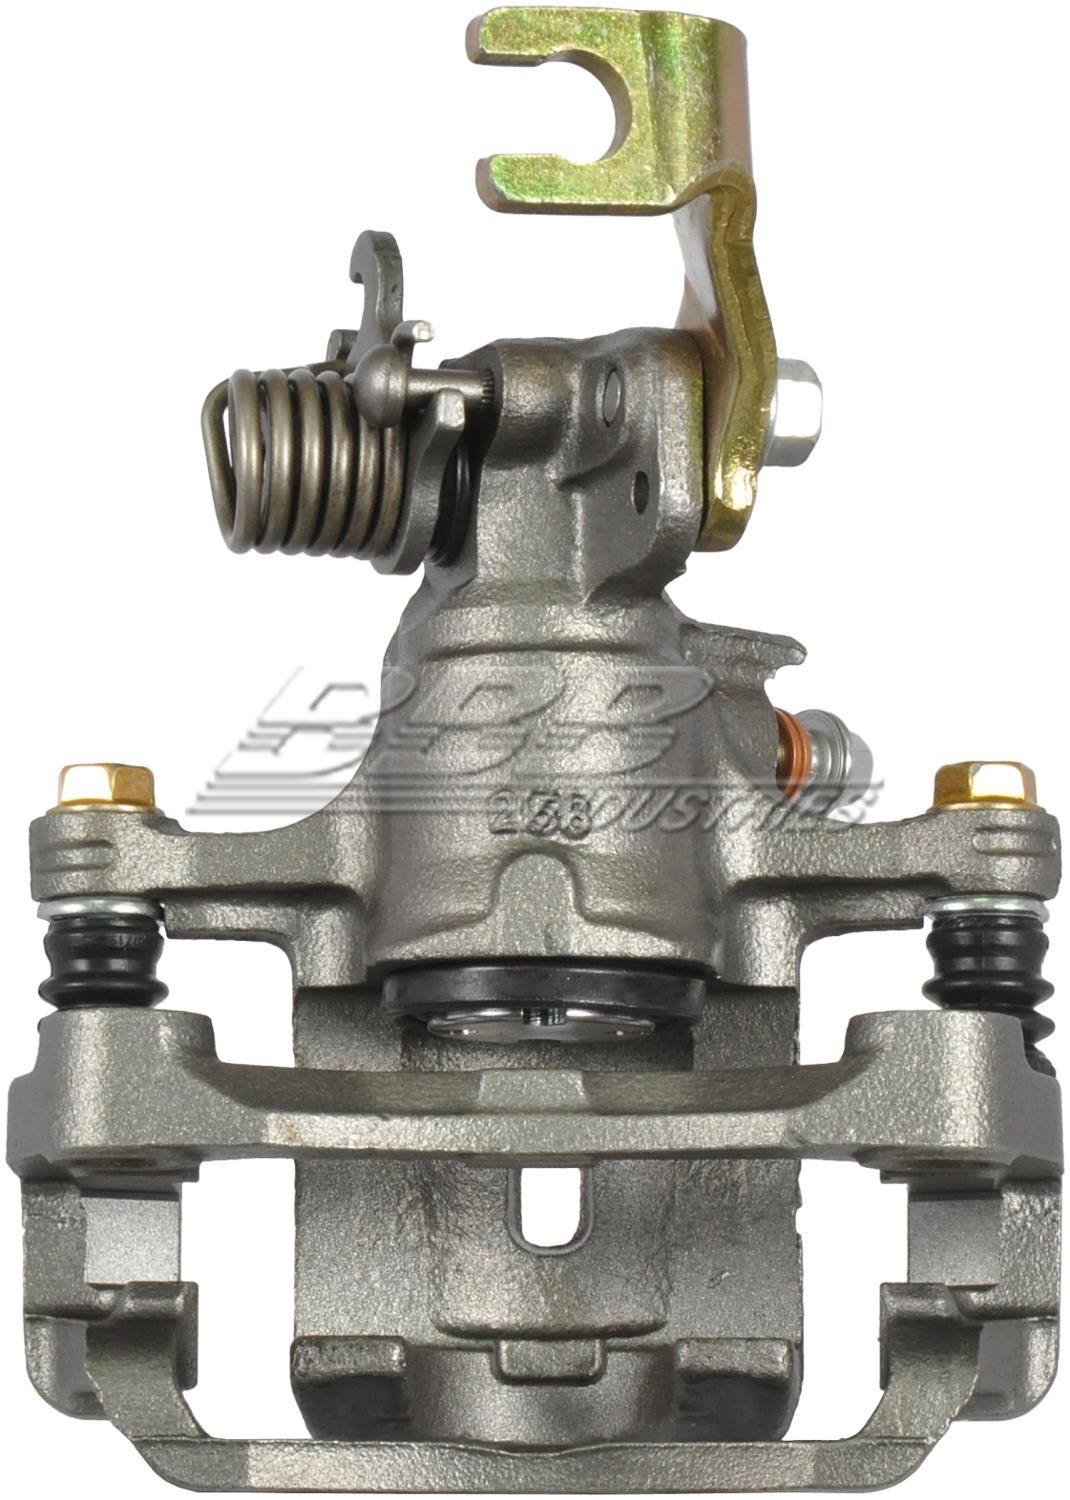 BBB INDUSTRIES - Reman Caliper w/ Installation Hardware (Rear Right) - BBA 99-00575A